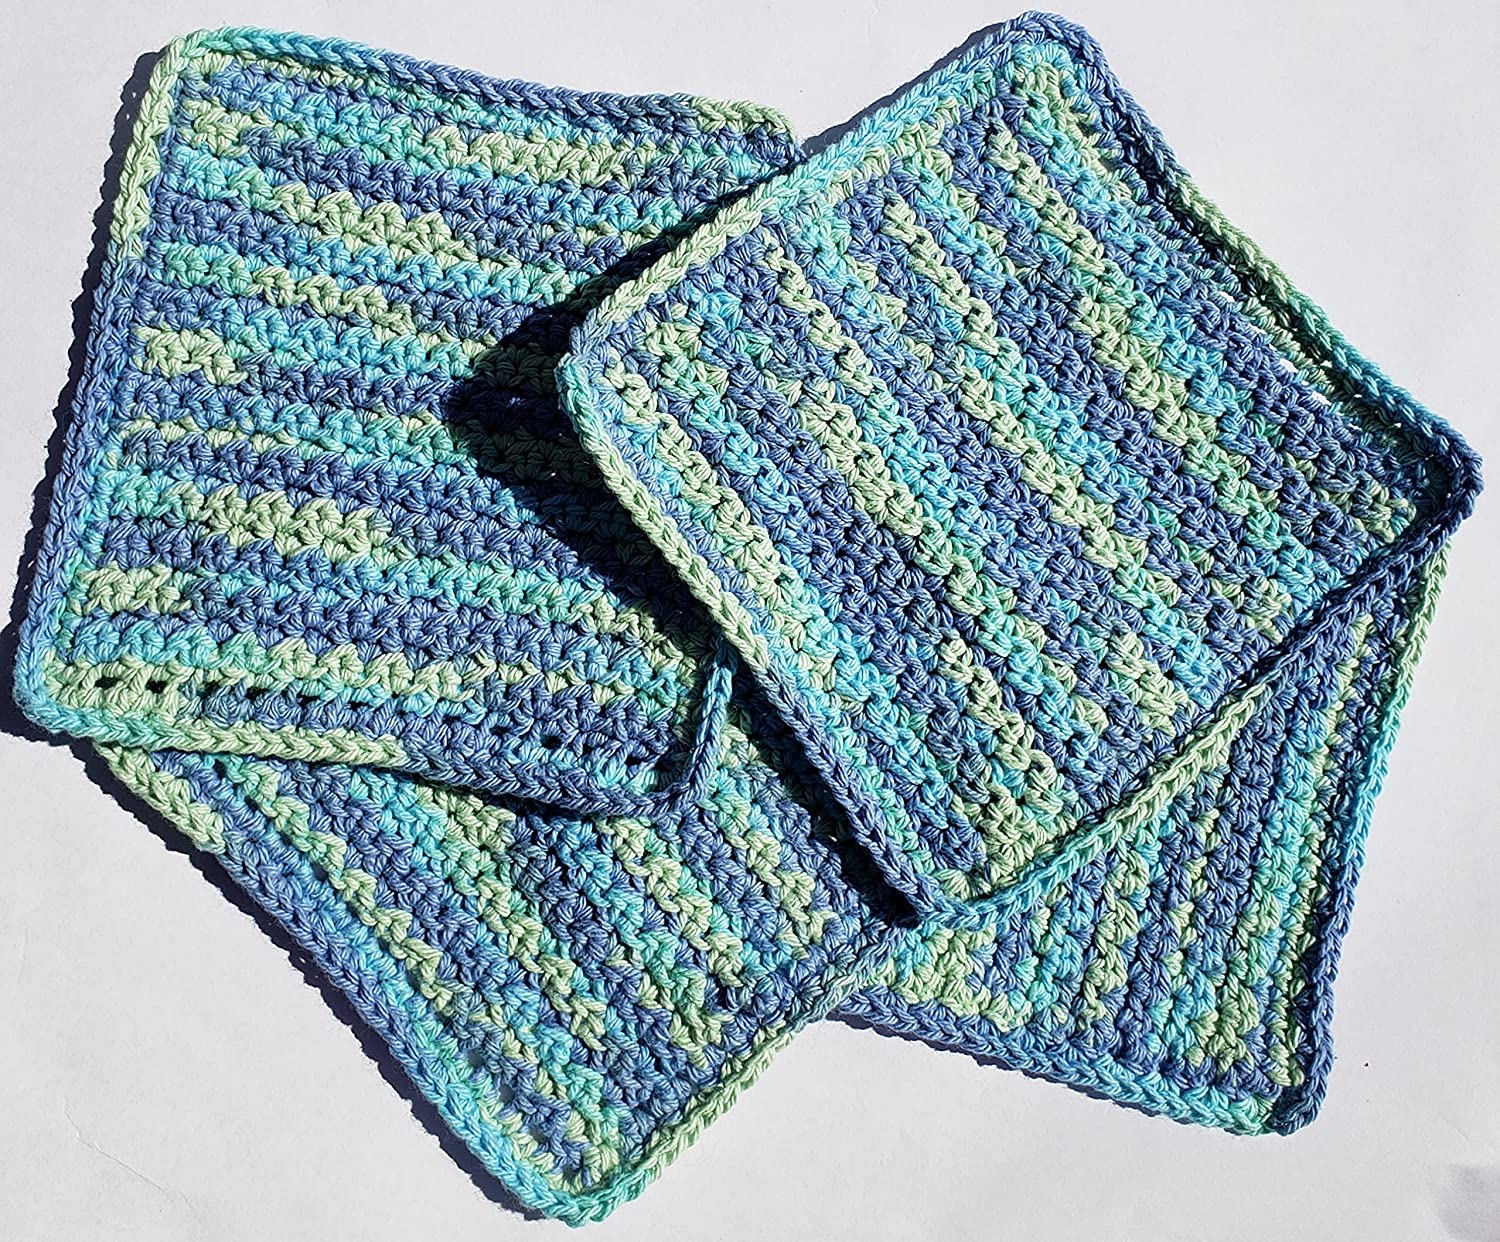 Kitchen Country Stripes Linen Max 71% OFF Dish Croc Cloths Cleaning NEW before selling ☆ Handmade